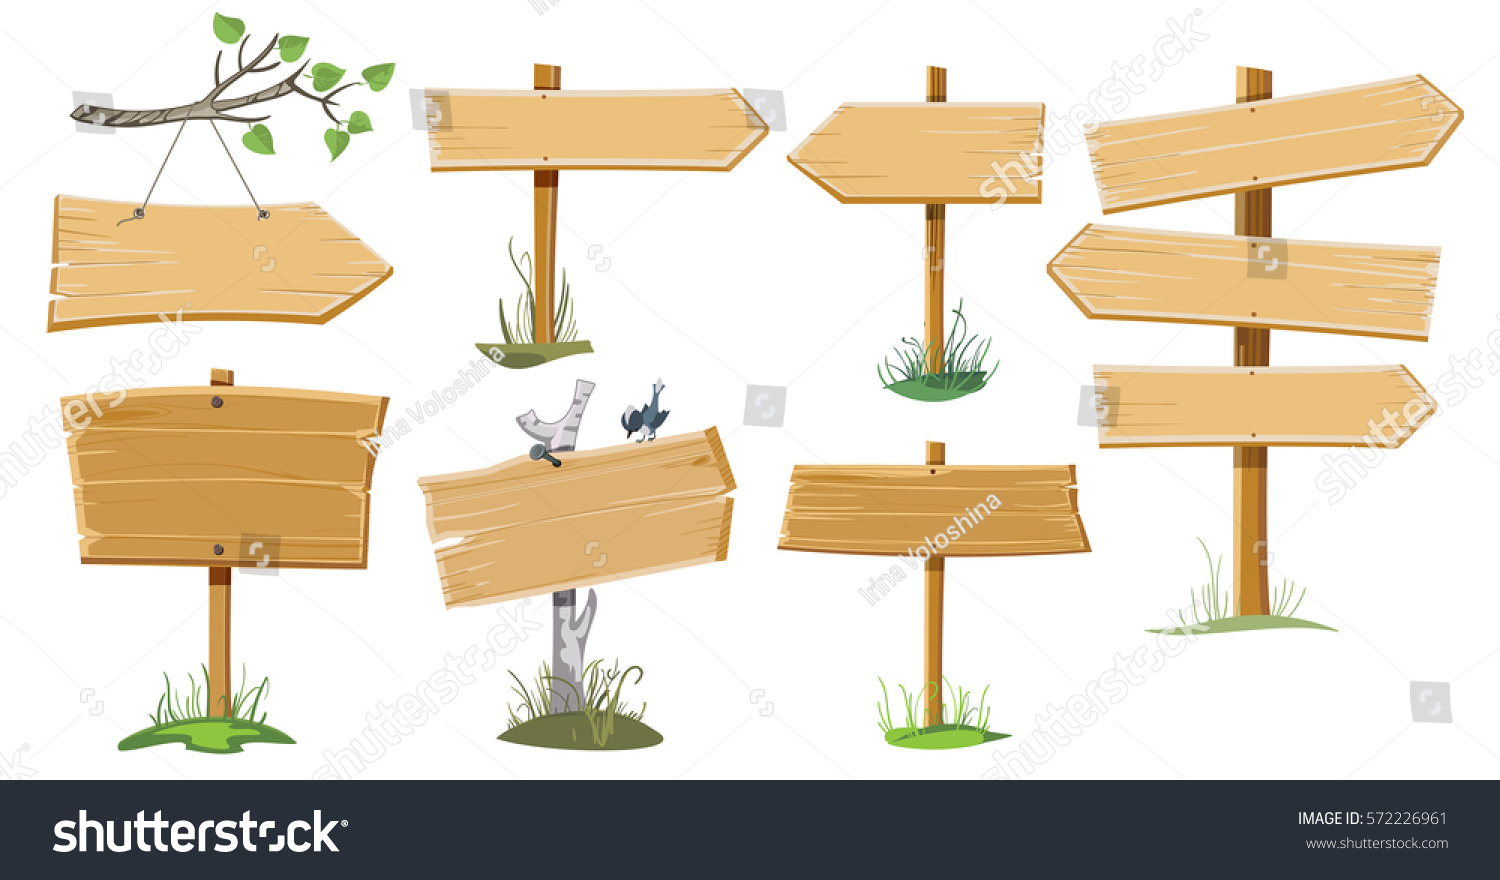 A set of several wooden street signs #572226961